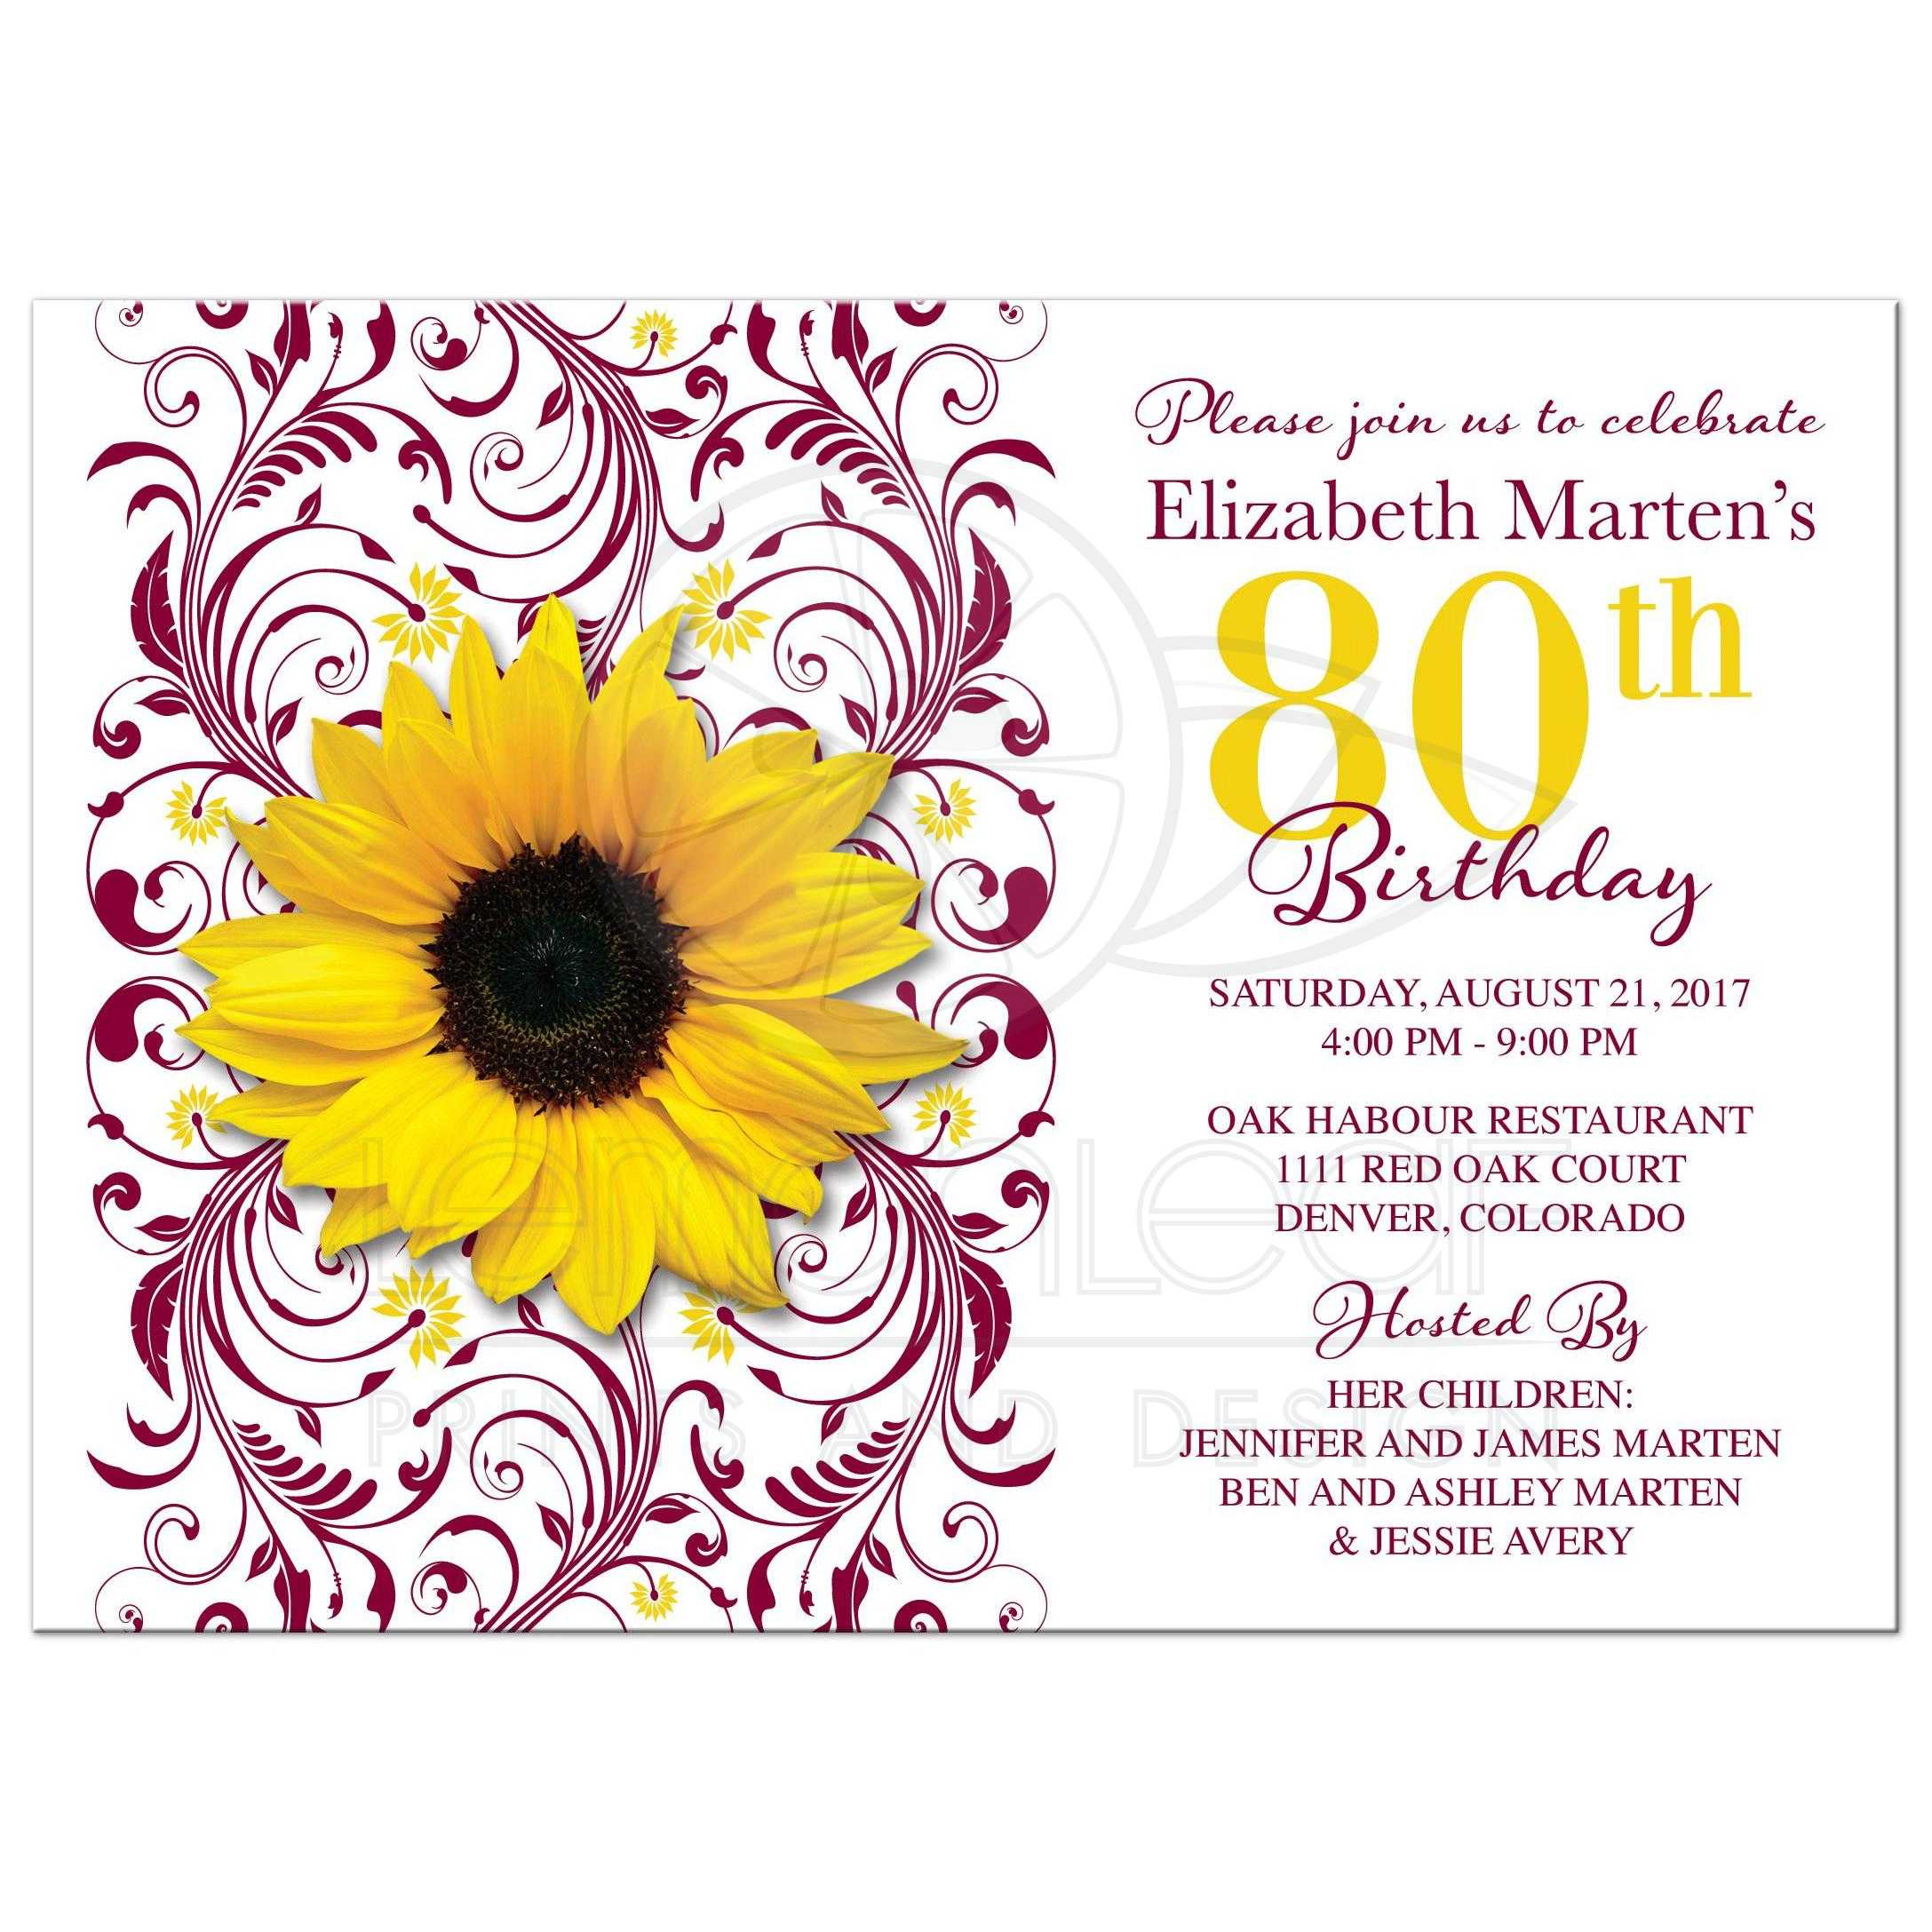 Burgundy yellow sunflower 80th birthday invitation burgundy floral and yellow sunflower flower 80th birthday invitation front izmirmasajfo